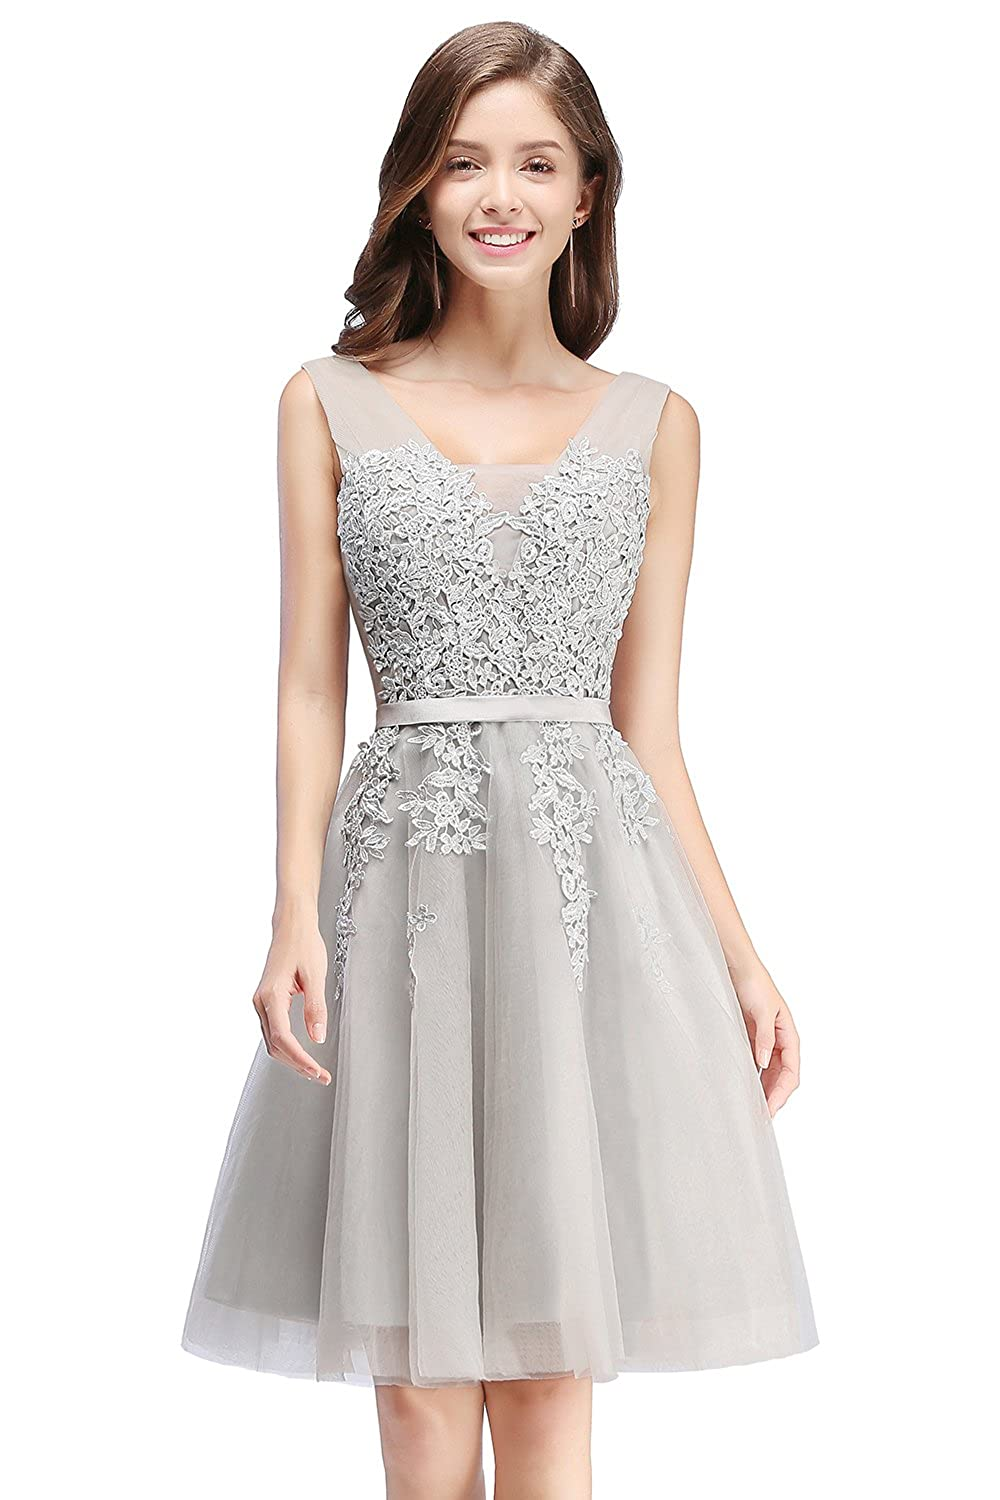 Babyonlinedress Tulle Lace Applique Junior's Formal Cocktail Homecoming Dresses